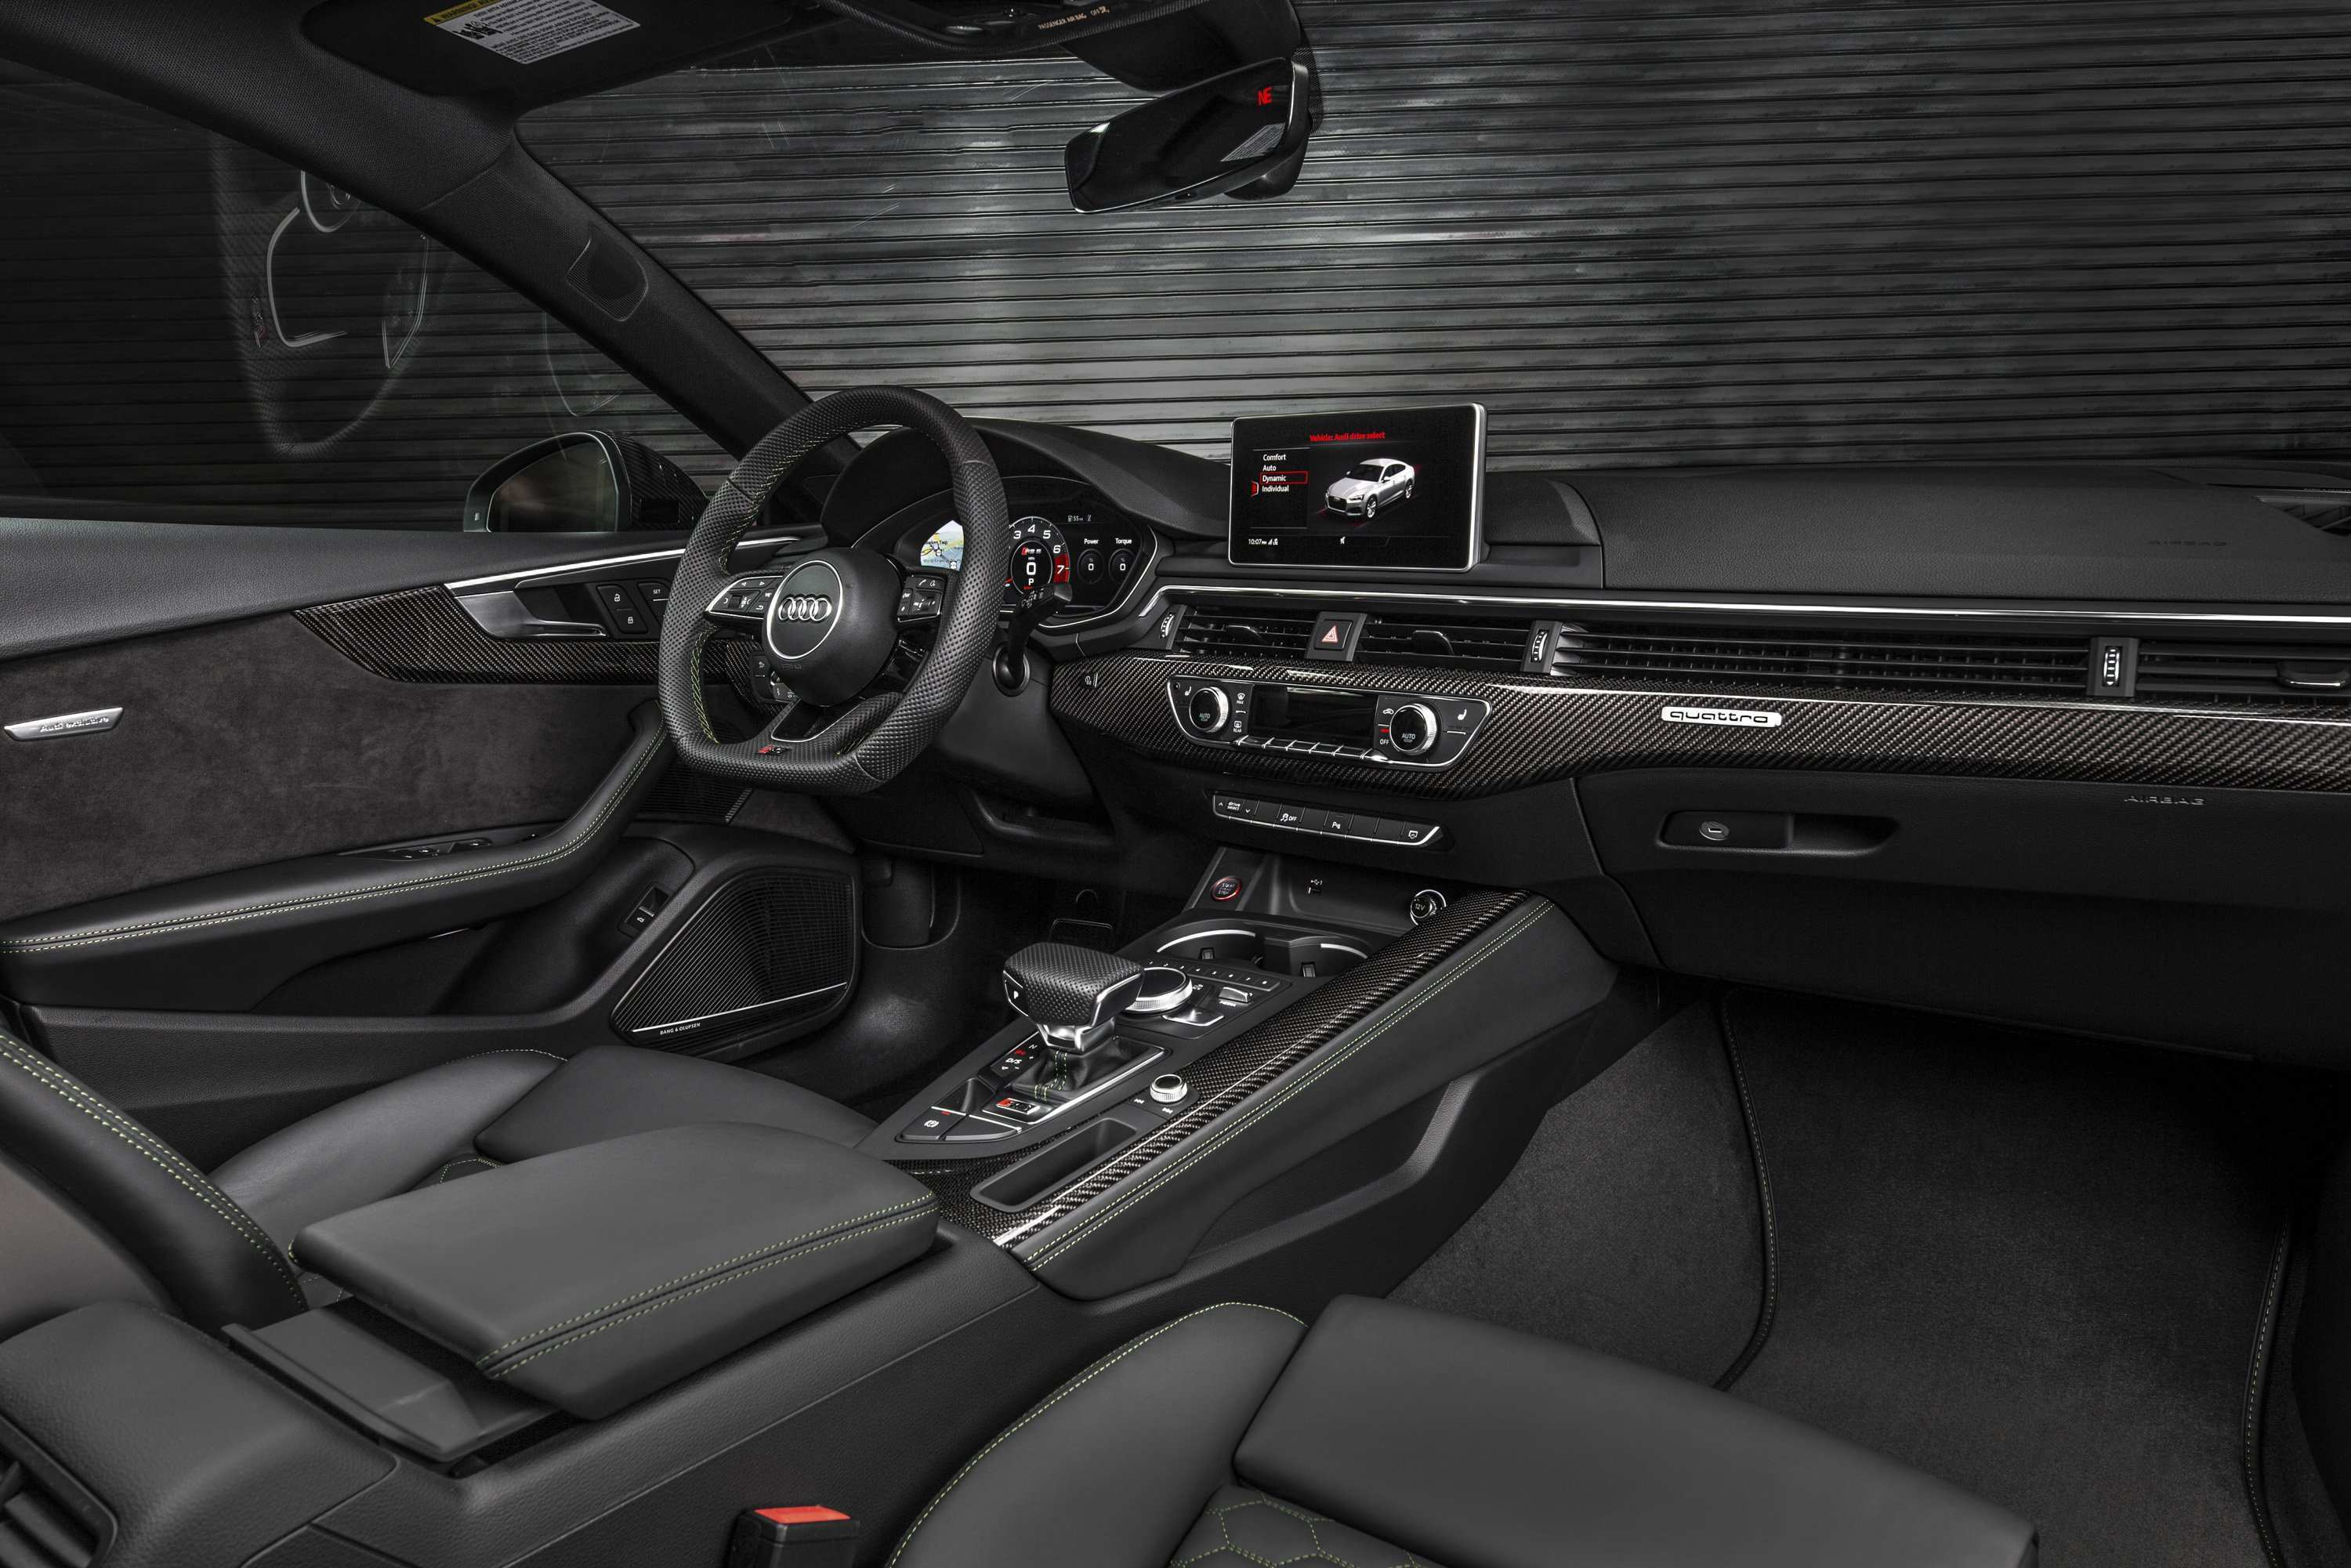 62 The Best 2019 Audi Rs5 Photos